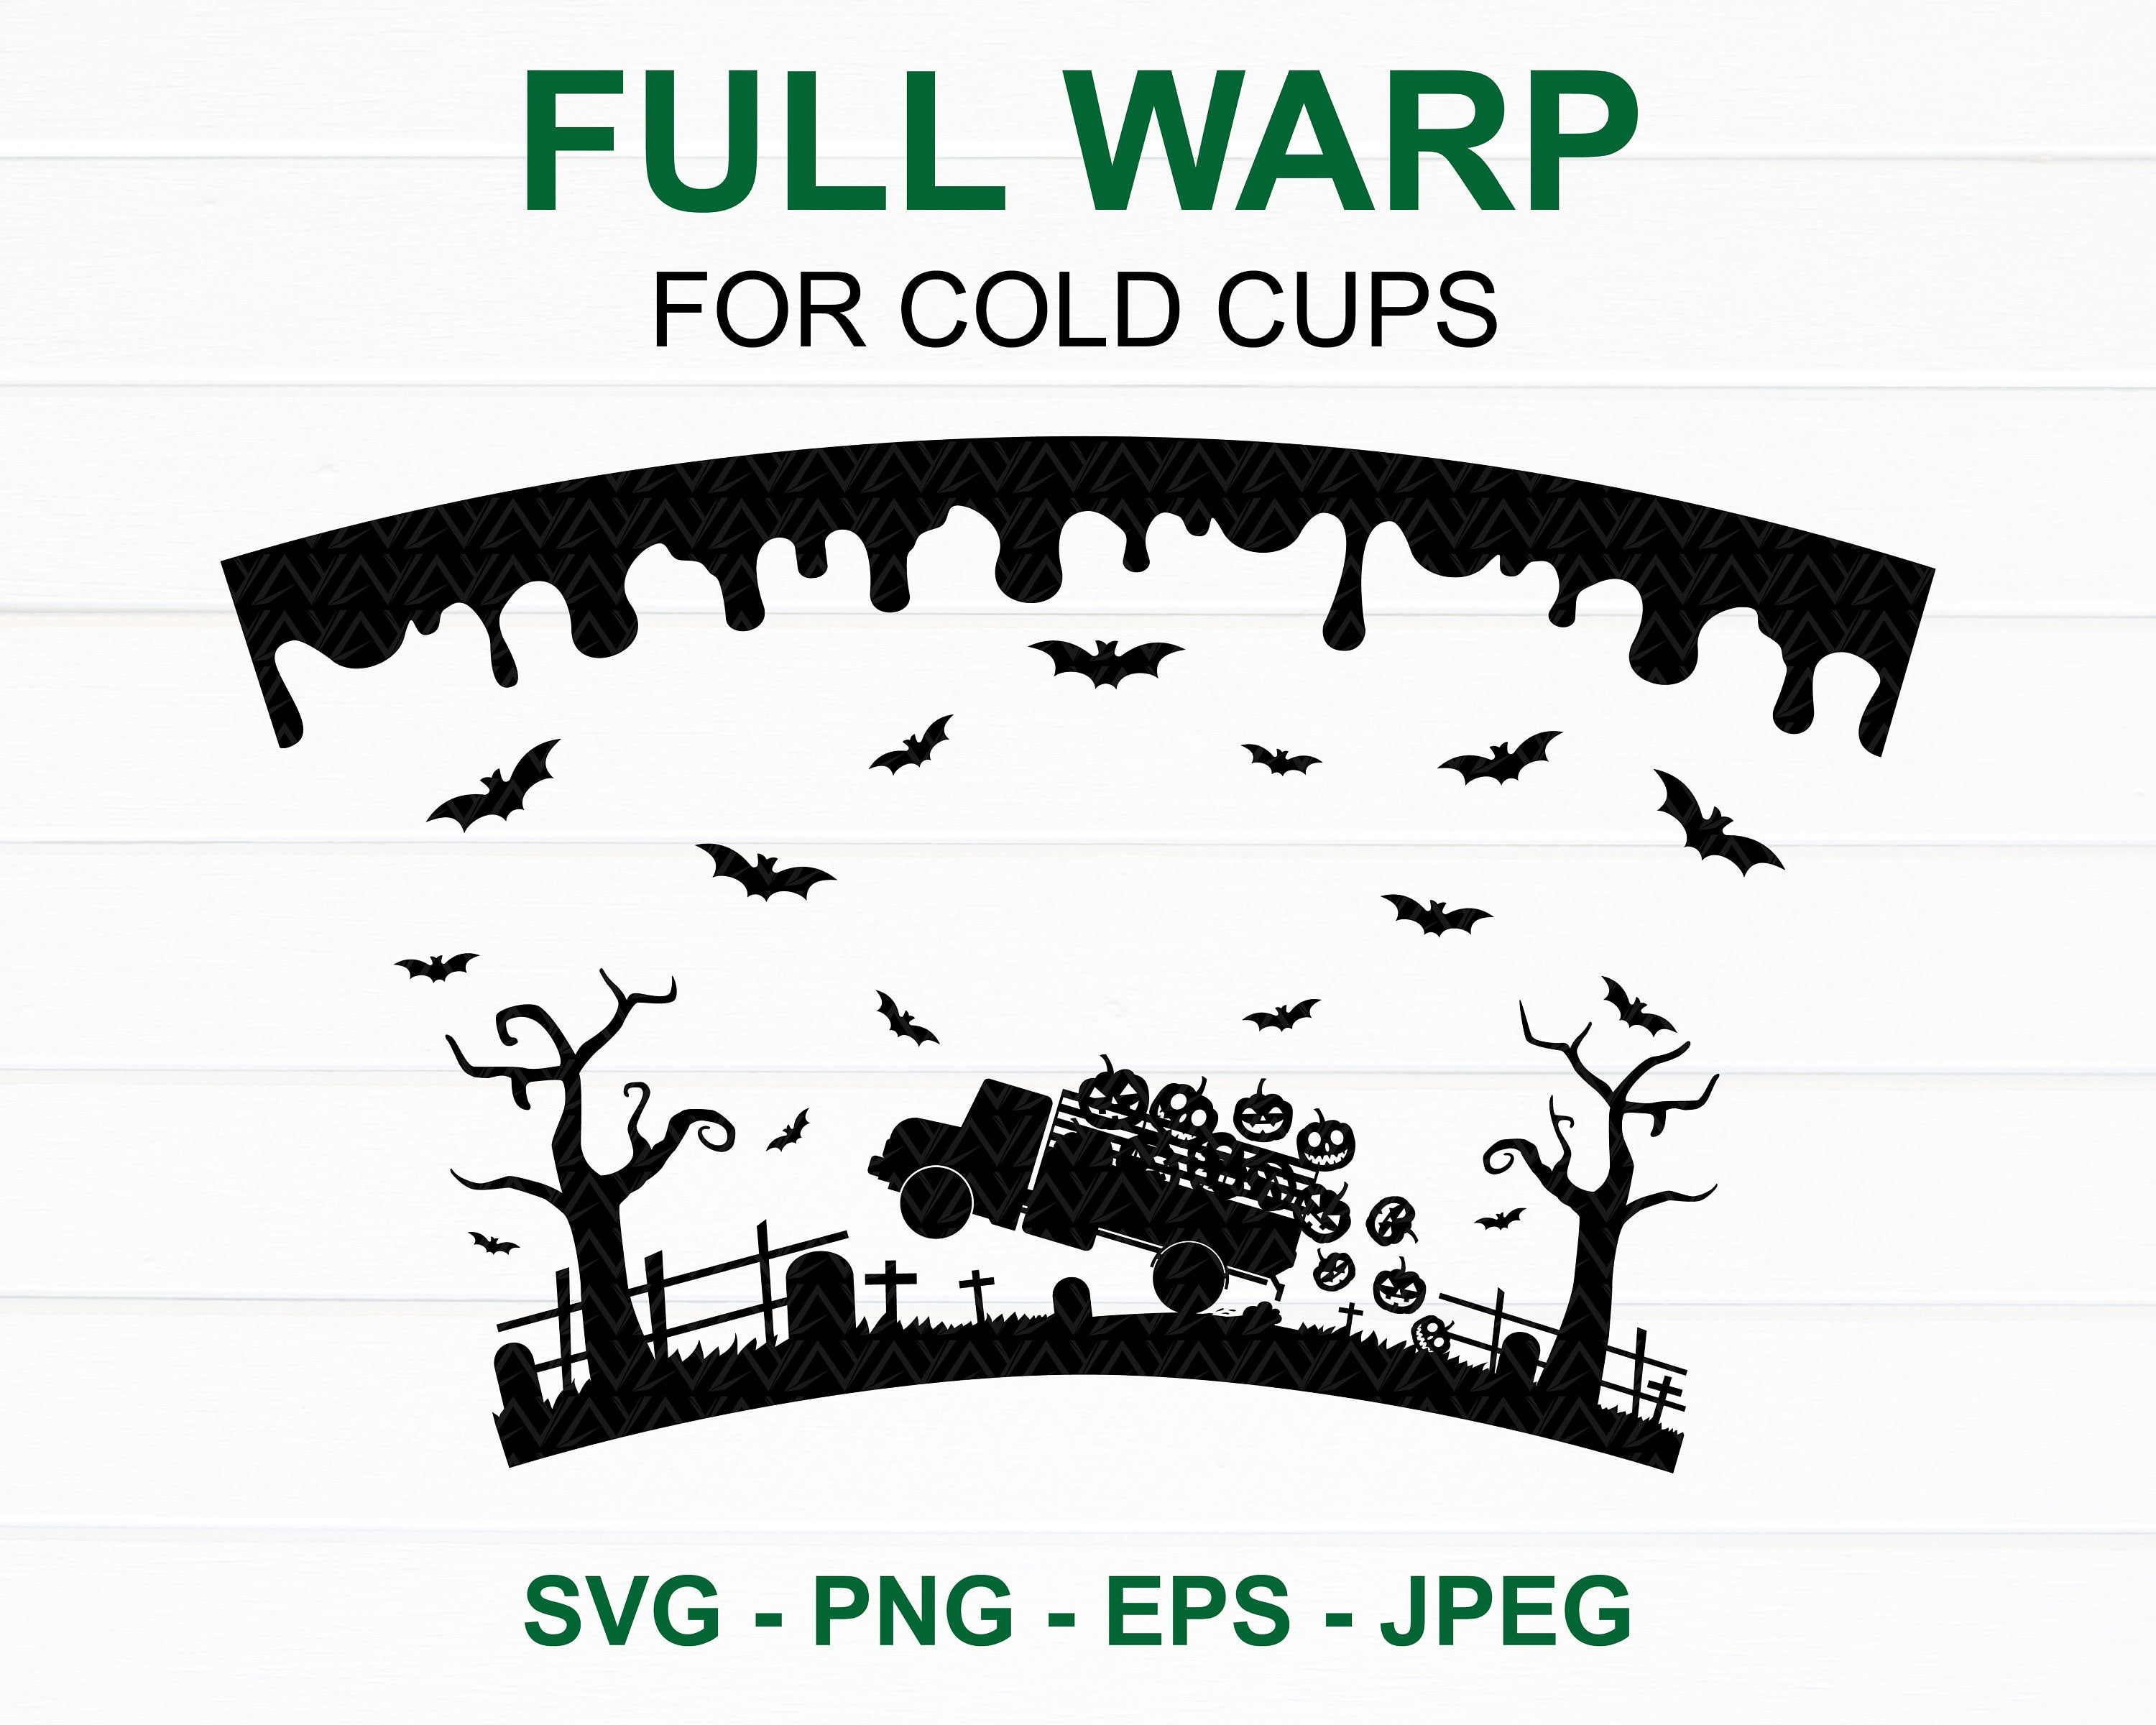 Halloween Starbucks cup SVG, Halloween Full Wrap Starbucks